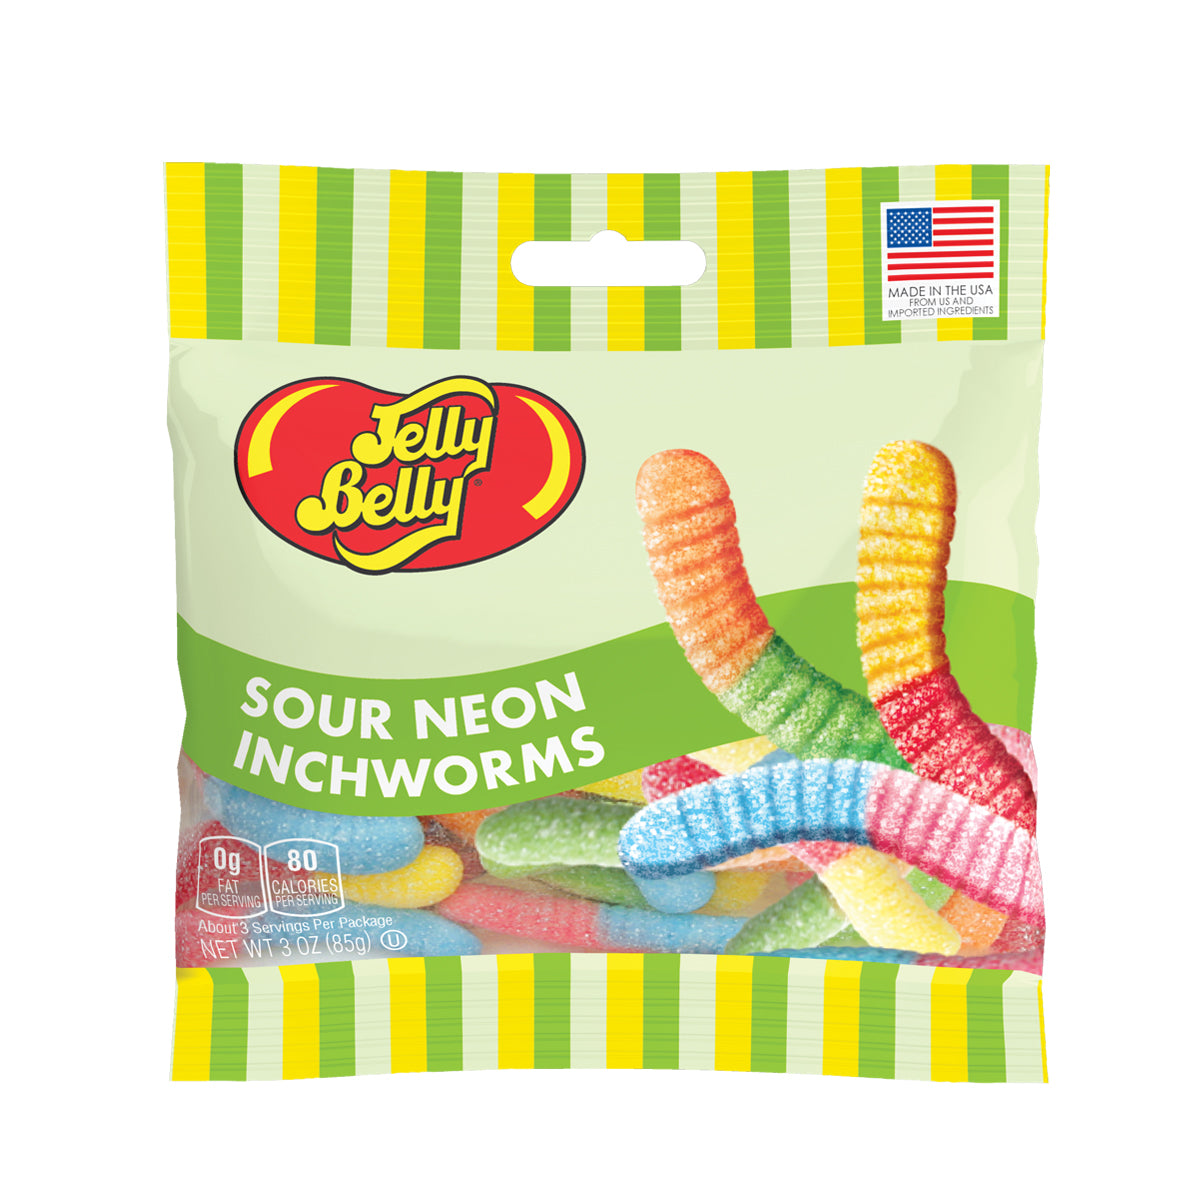 Jelly Belly Sour Neon Inchworms, 3oz